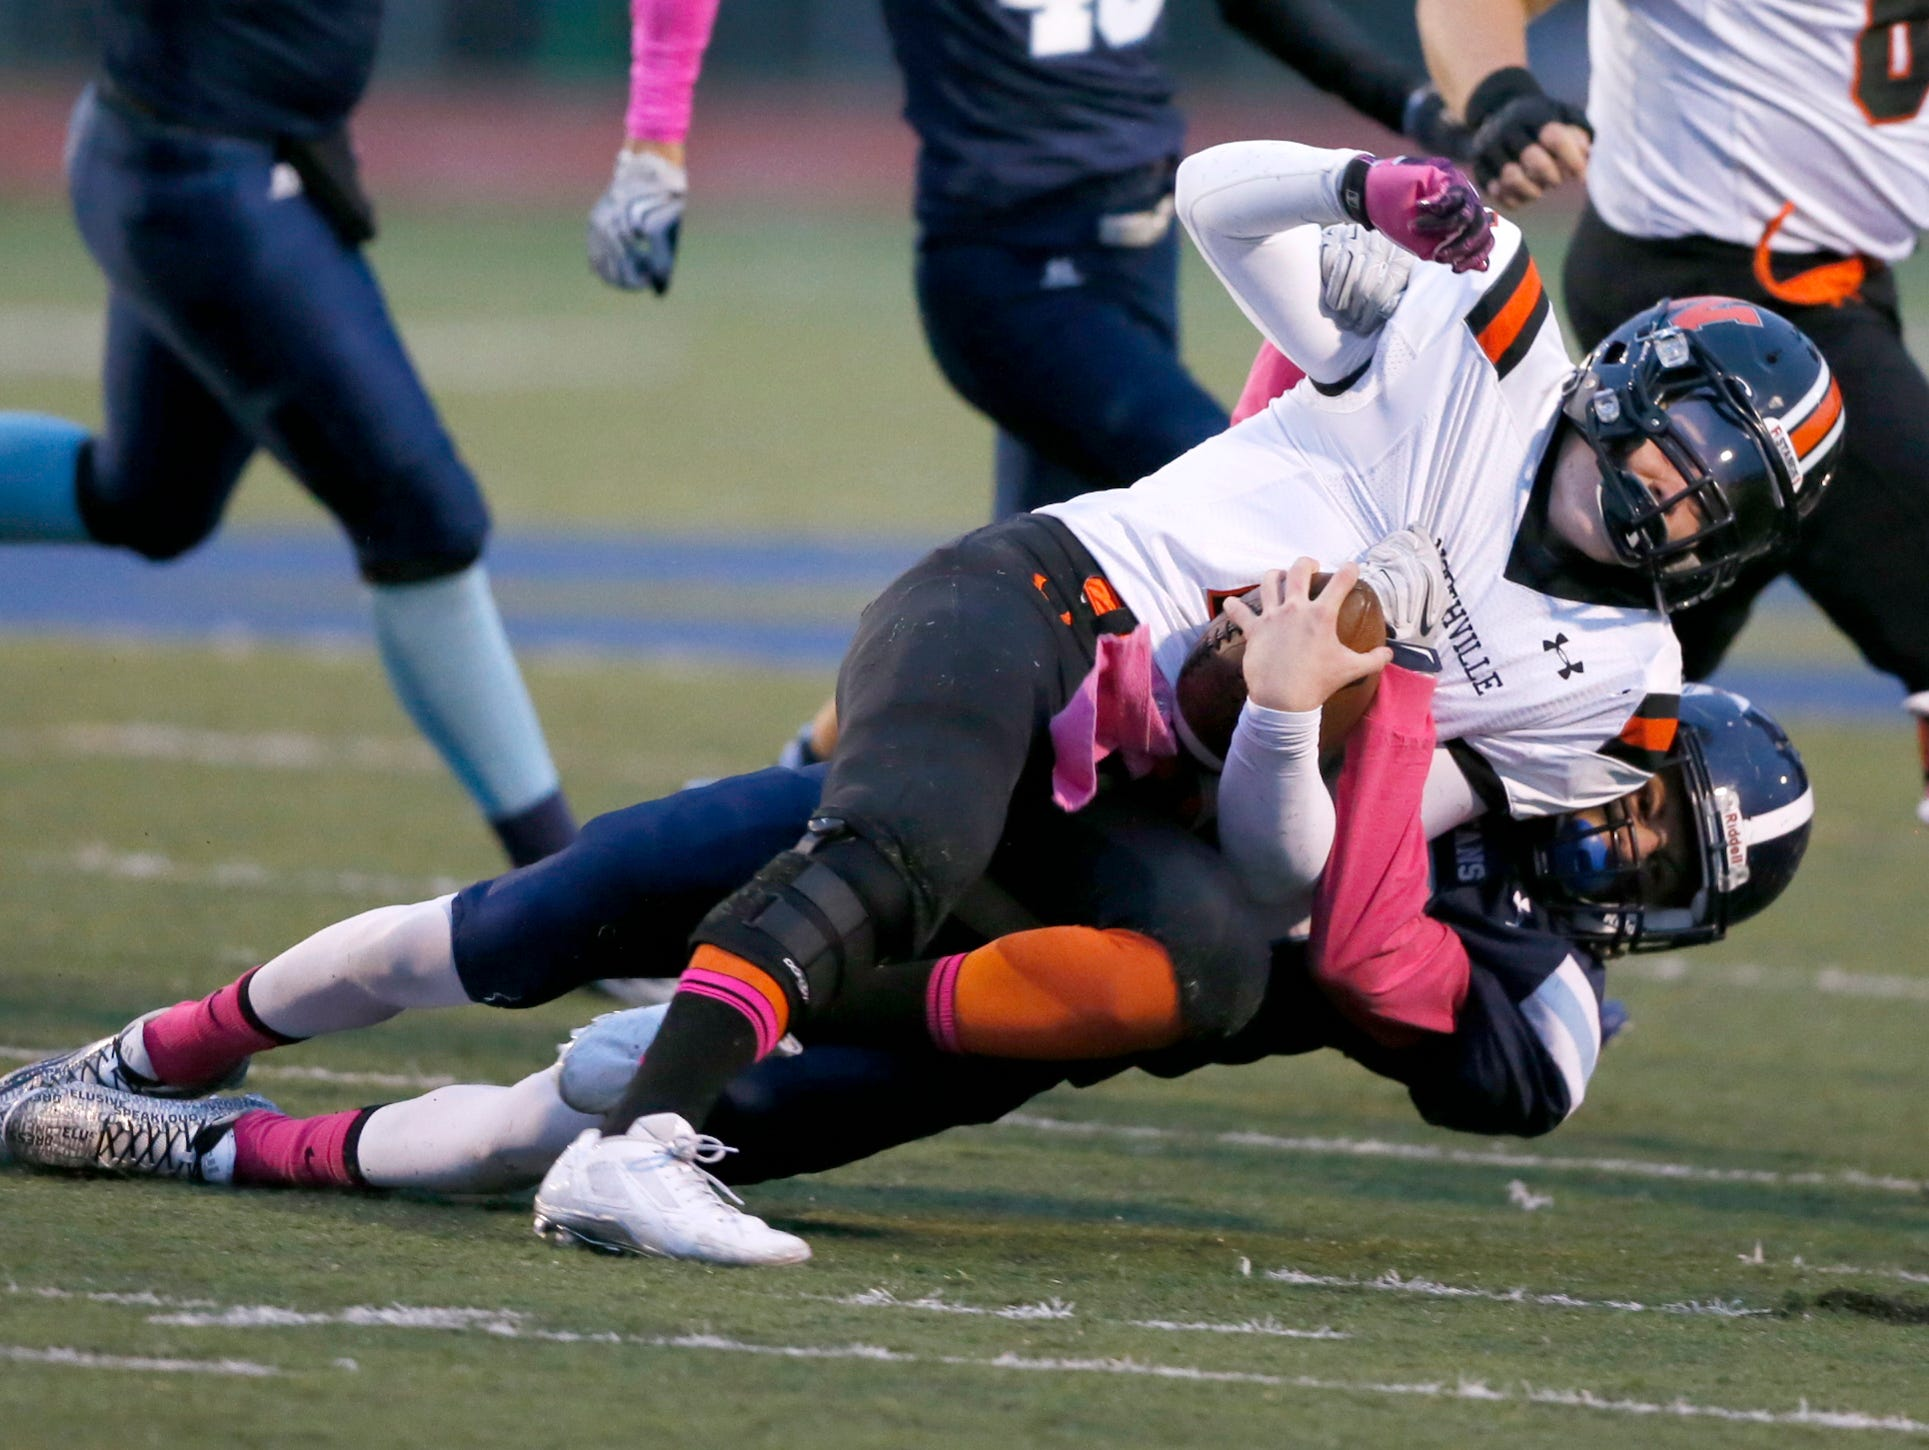 Northville's Justin Zimbo is tackled by Livonia Stevenson high school's Jack Balint at the endow a first down run in the first half of their football game on Friday, October 2, 2015, in Livonia. Julian H. Gonzalez/Detroit Free Press